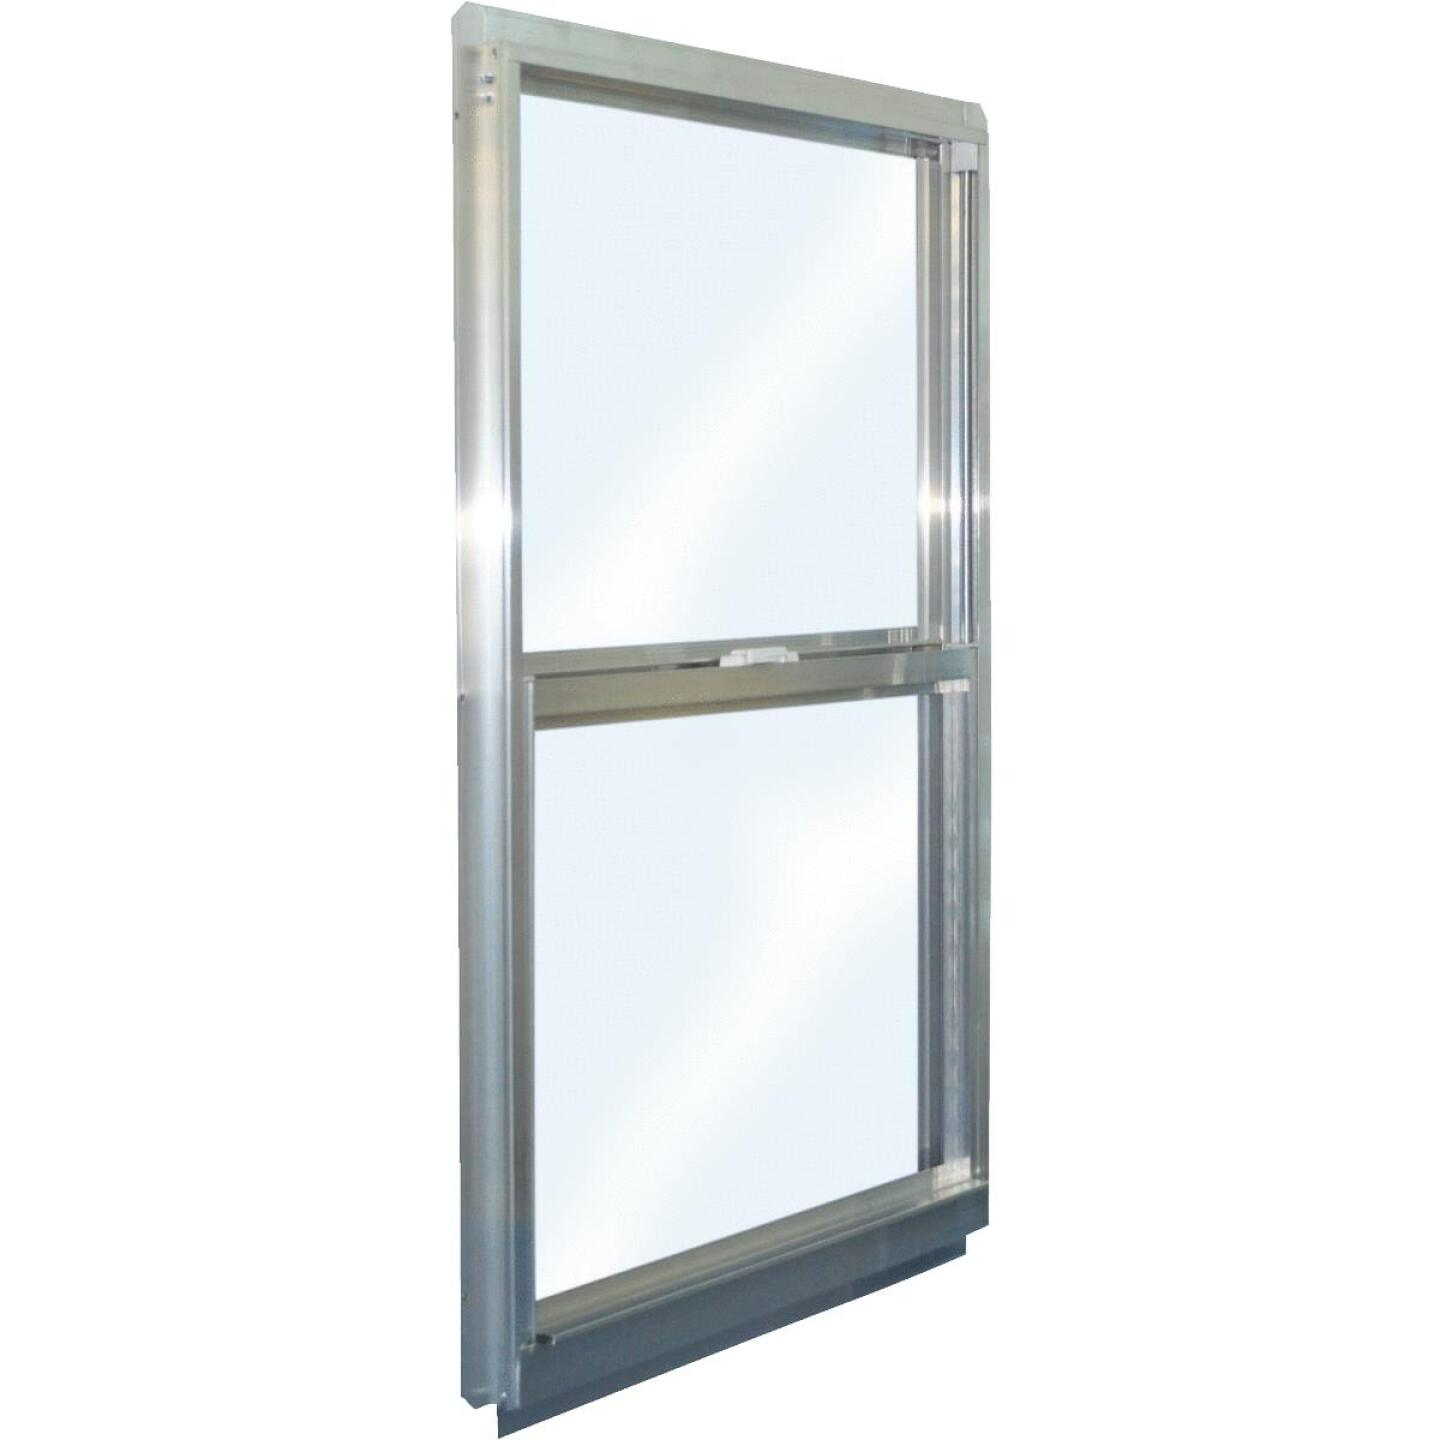 Croft Series 90 31 In. W. x 59 In. H. Mill Finish Aluminum Single Hung Window Image 1